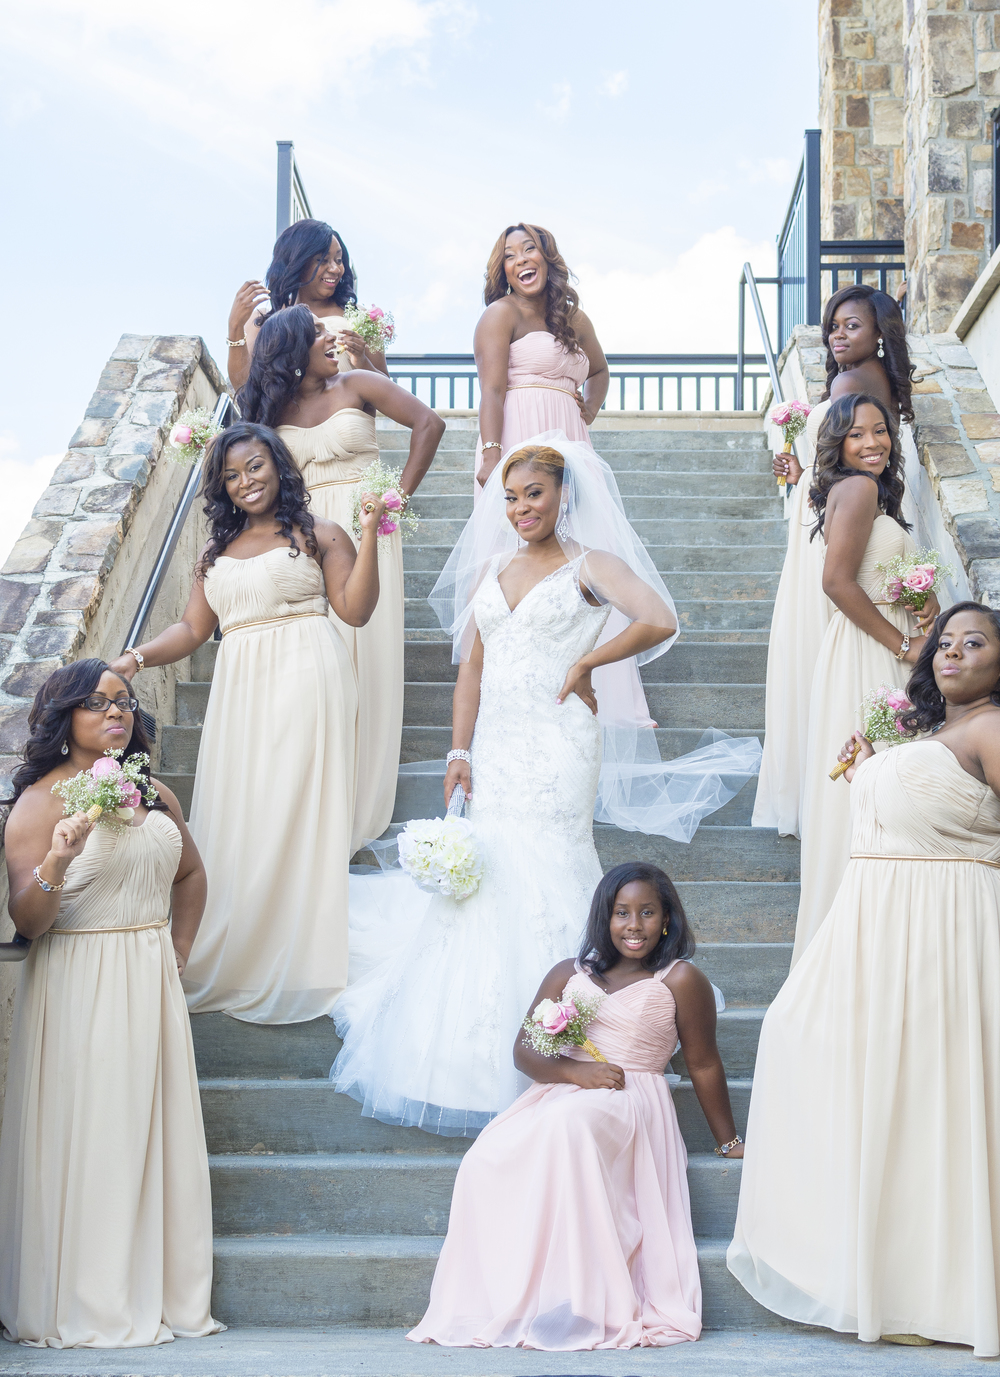 MOORE-BIVENS WEDDING 2015-282-2.jpg